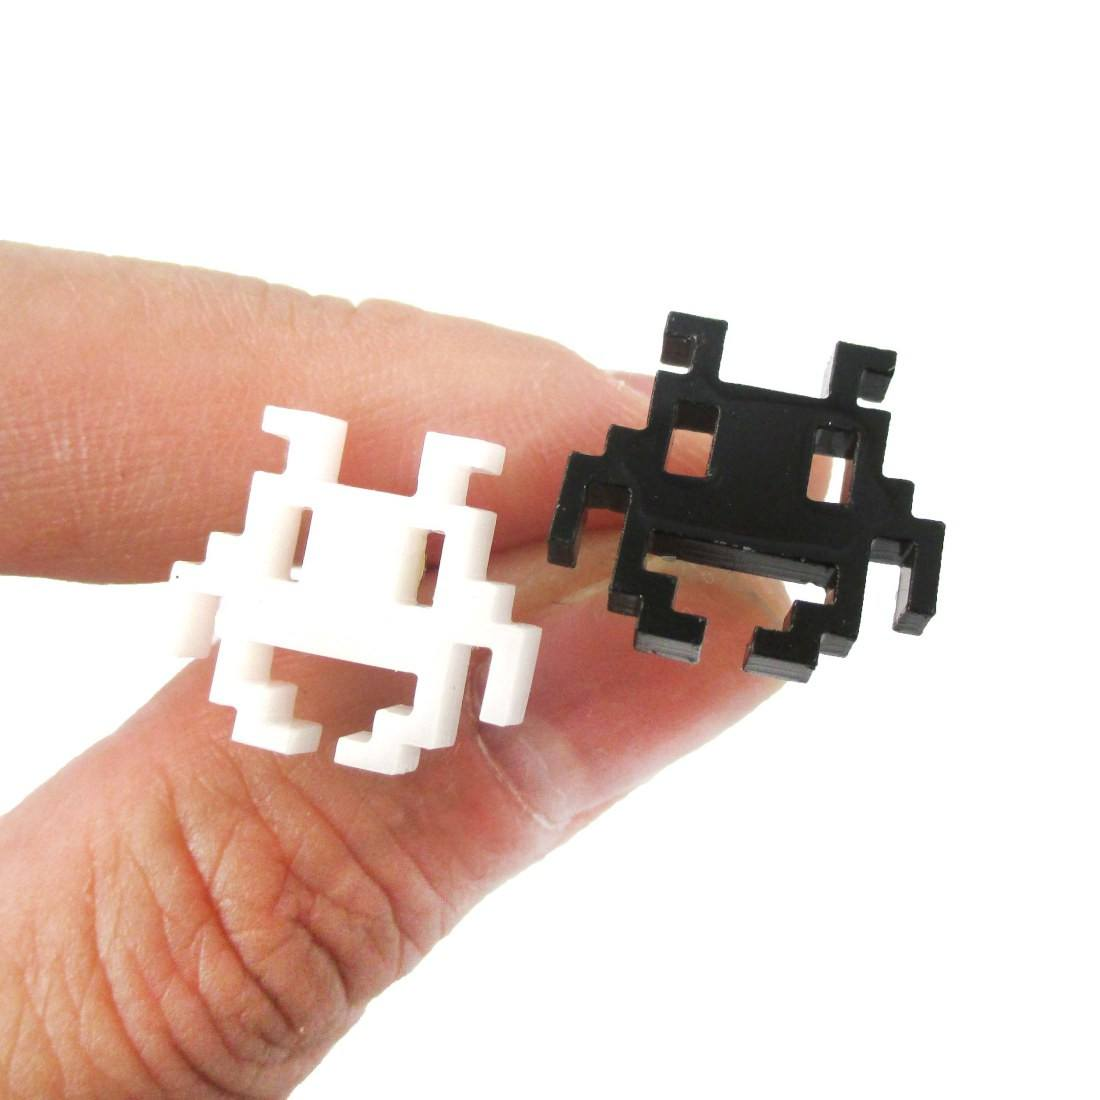 Atari Space Invaders Pixel Alien Shaped Laser Cut Stud Earrings in B/W